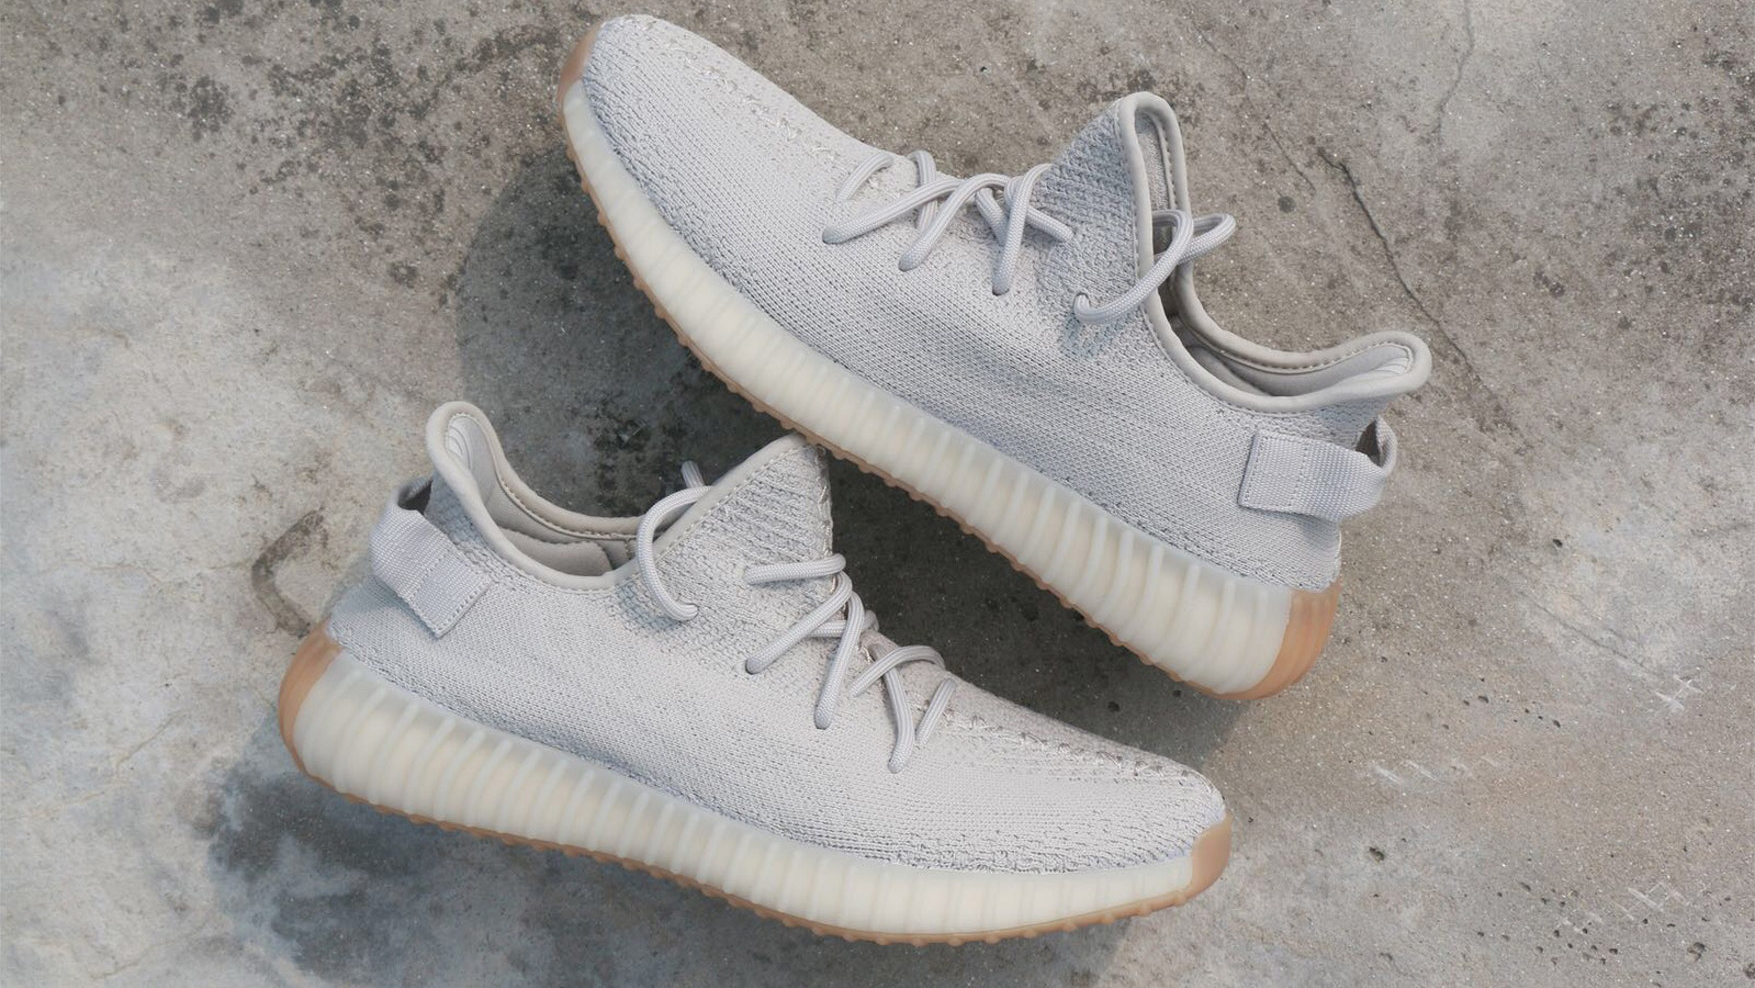 45ec4d64731bf The Adidas Yeezy Boost 350 V2